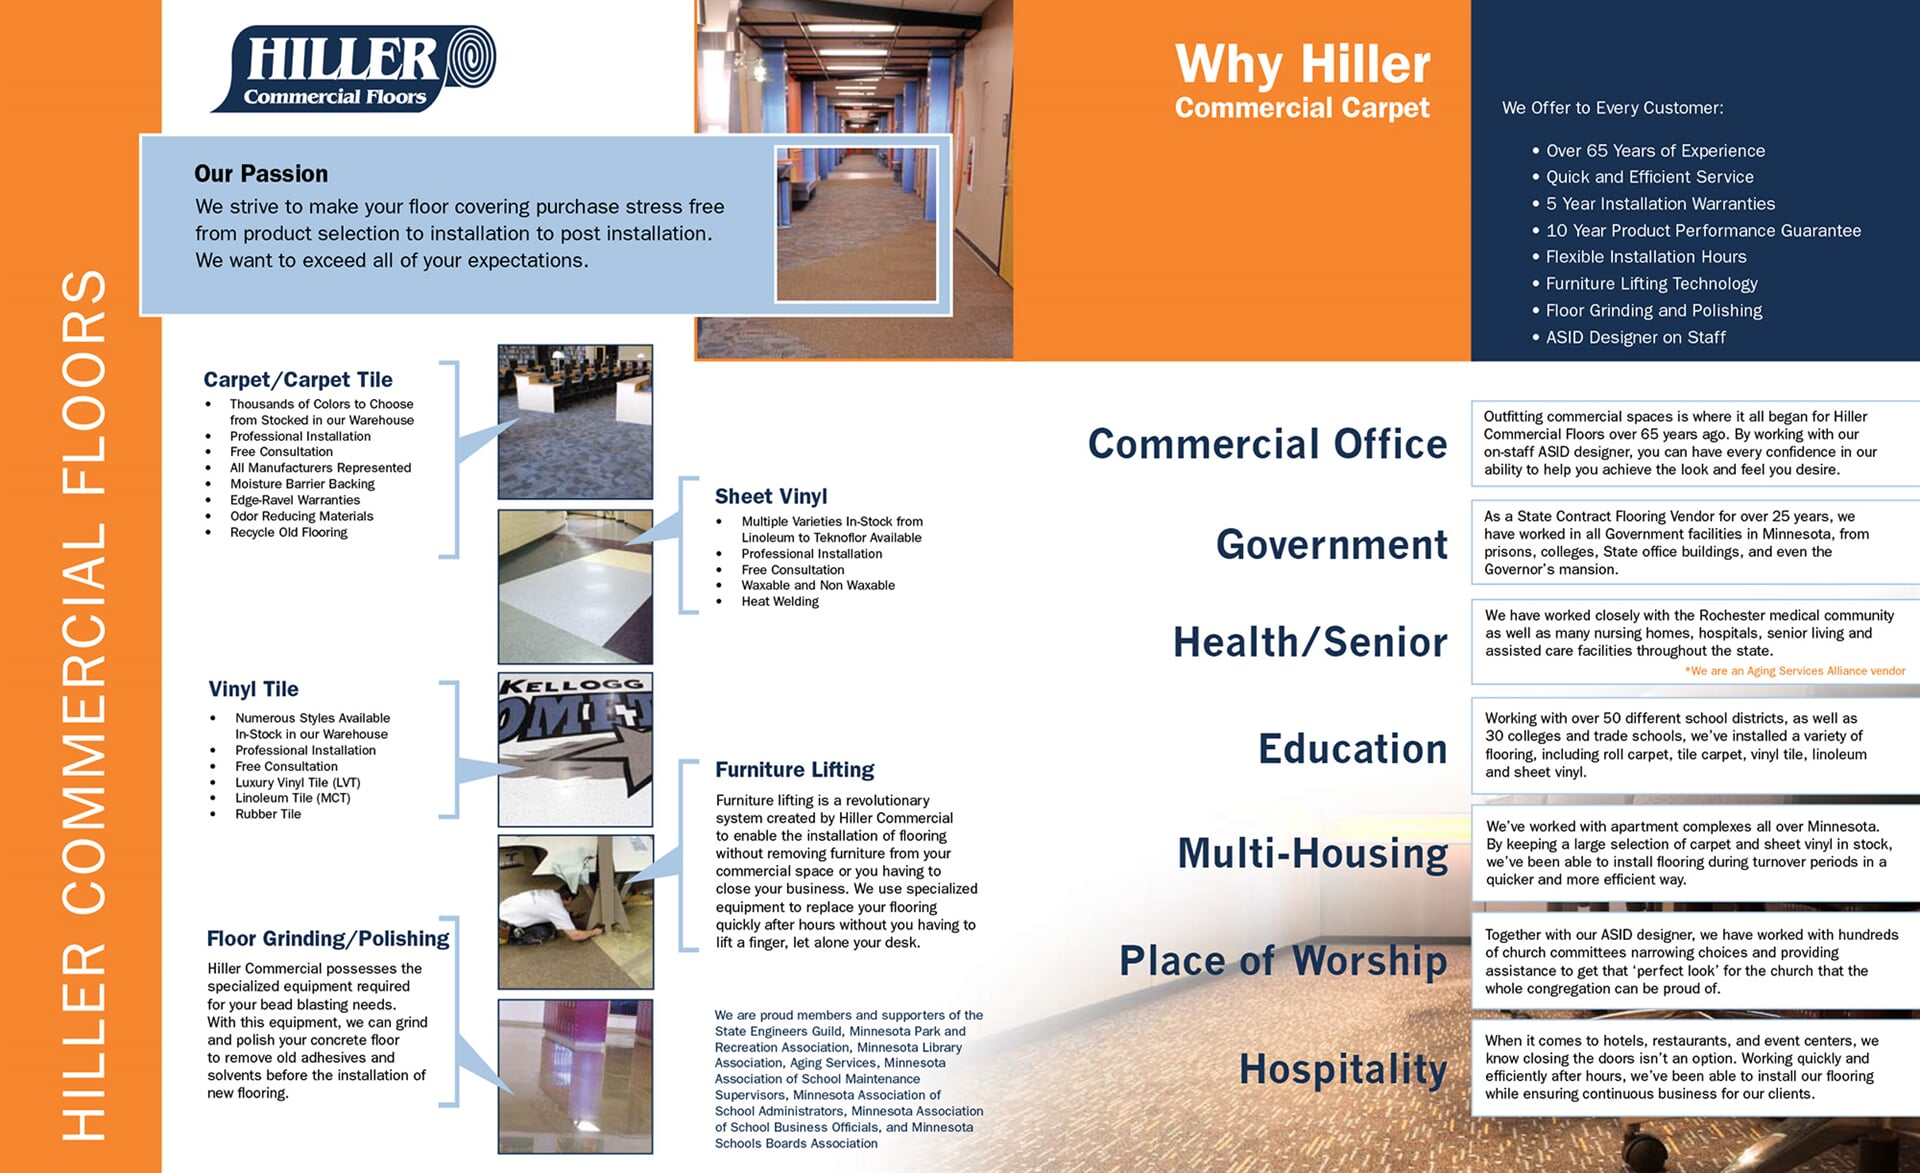 Why you should choose Hiller Commercial Carpet for your business